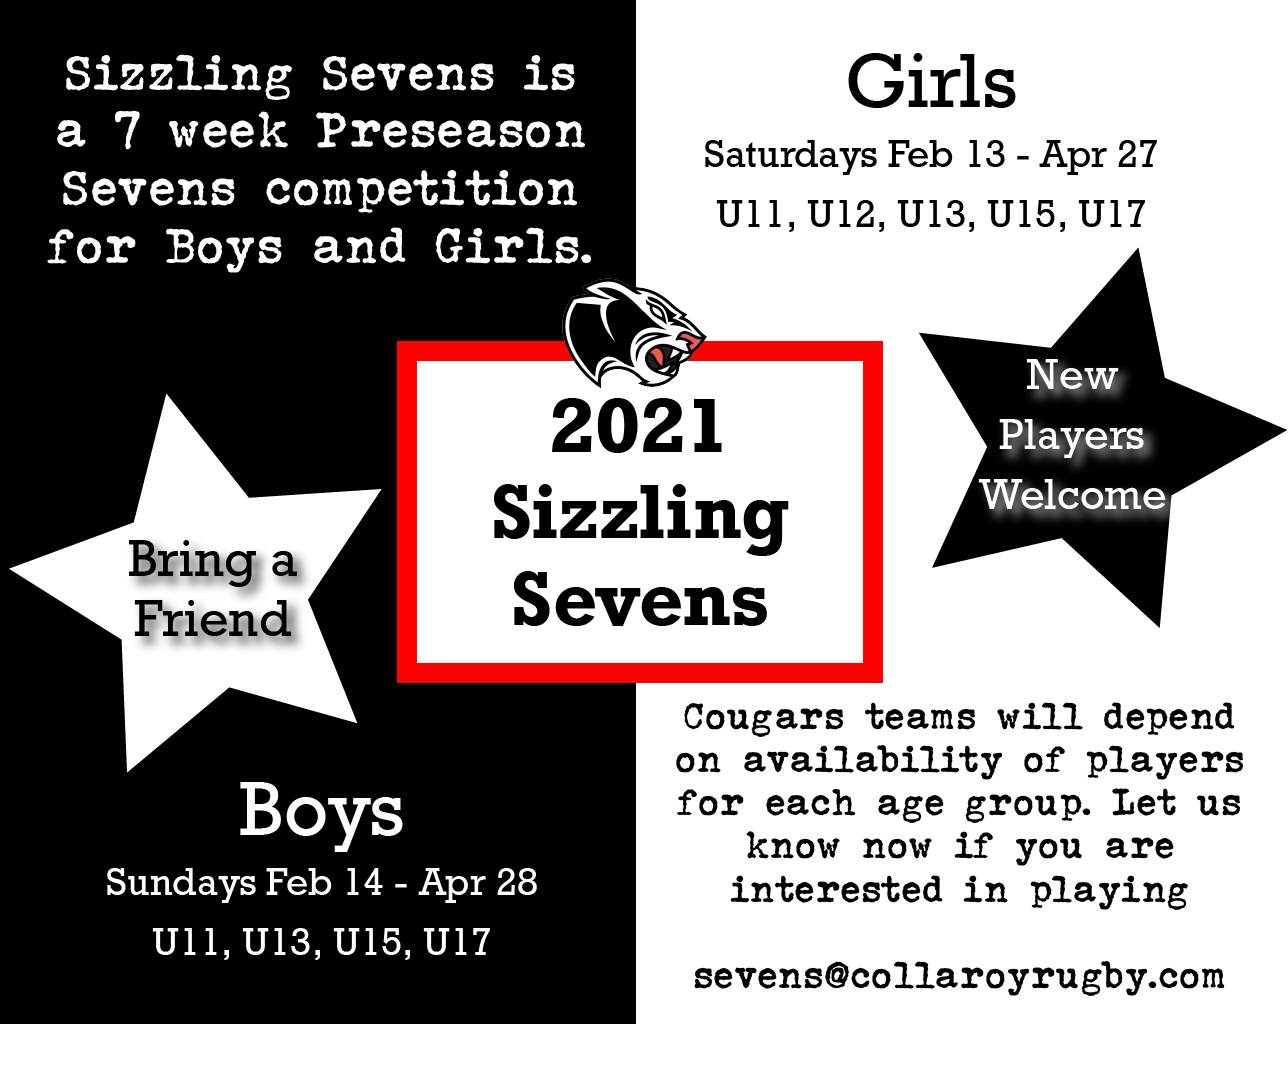 Sizzing Sevens starts in 3 weeks and thi